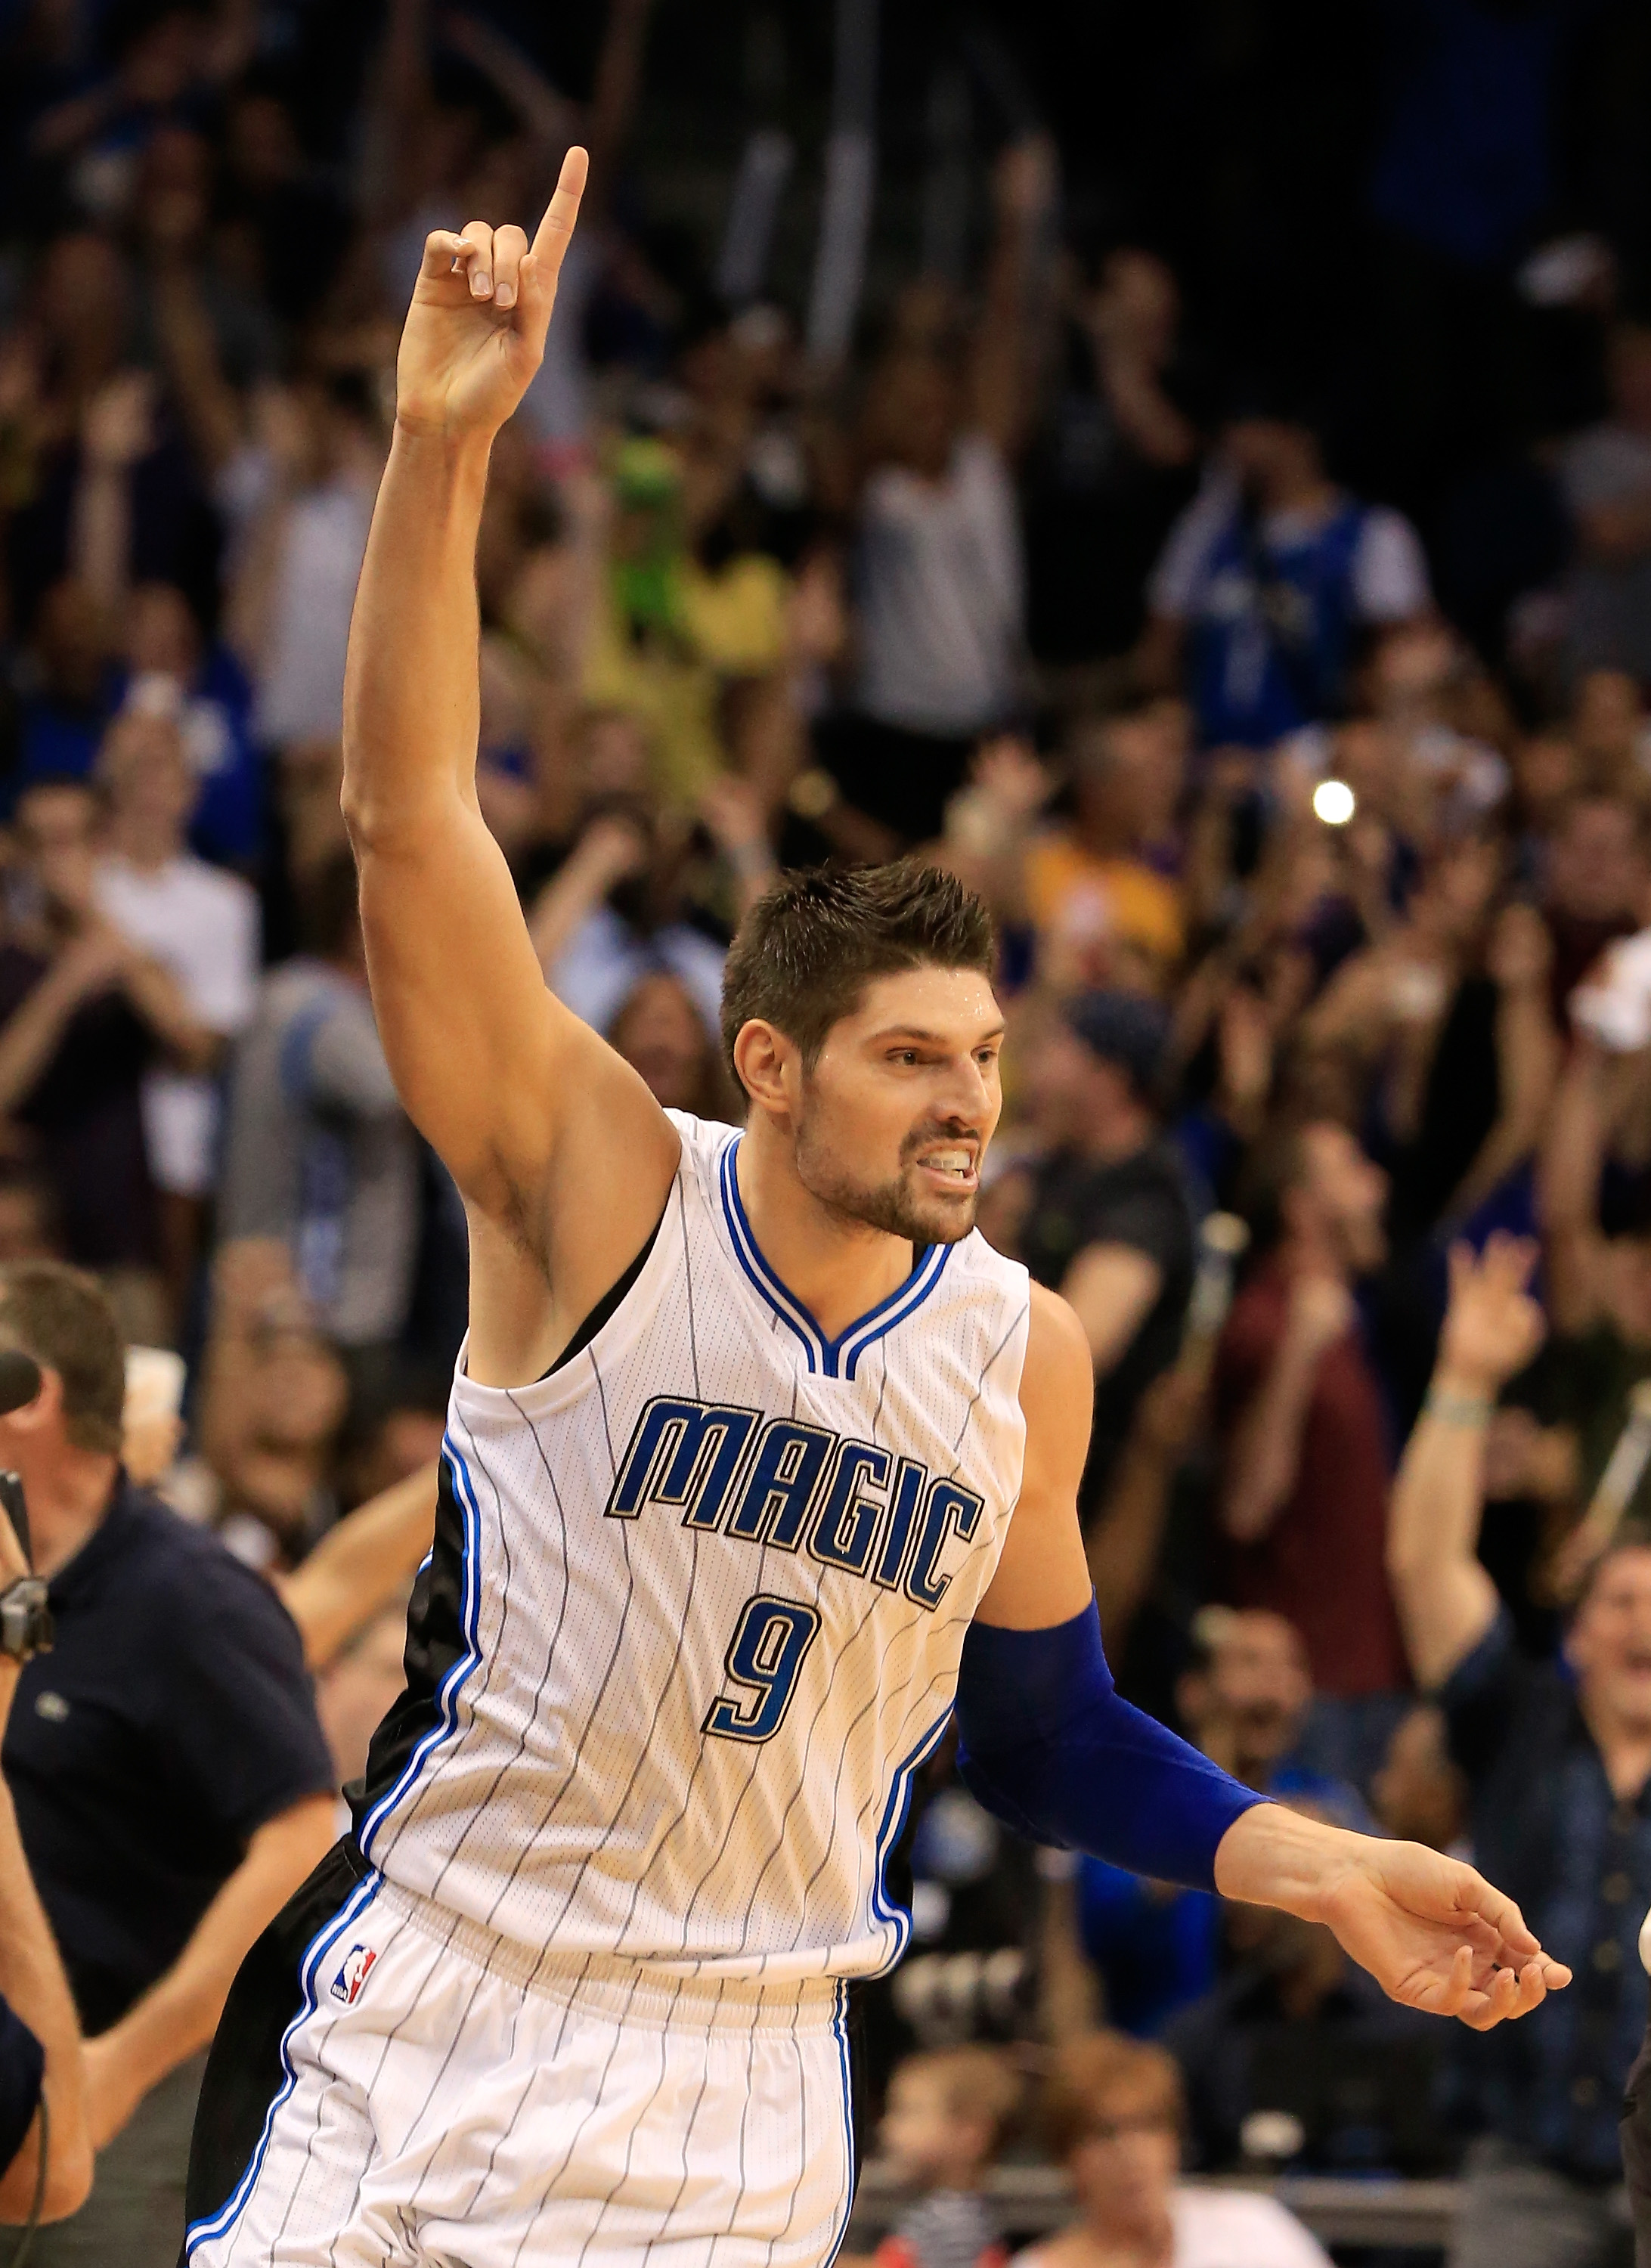 ORLANDO, FL - NOVEMBER 11:  Nikola Vucevic #9 of the Orlando Magic celebrates a game winning shot to defeat the Los Angeles Lakers 101-99 at Amway Center on November 11, 2015 in Orlando, Florida.  (Photo by Sam Greenwood/Getty Images)